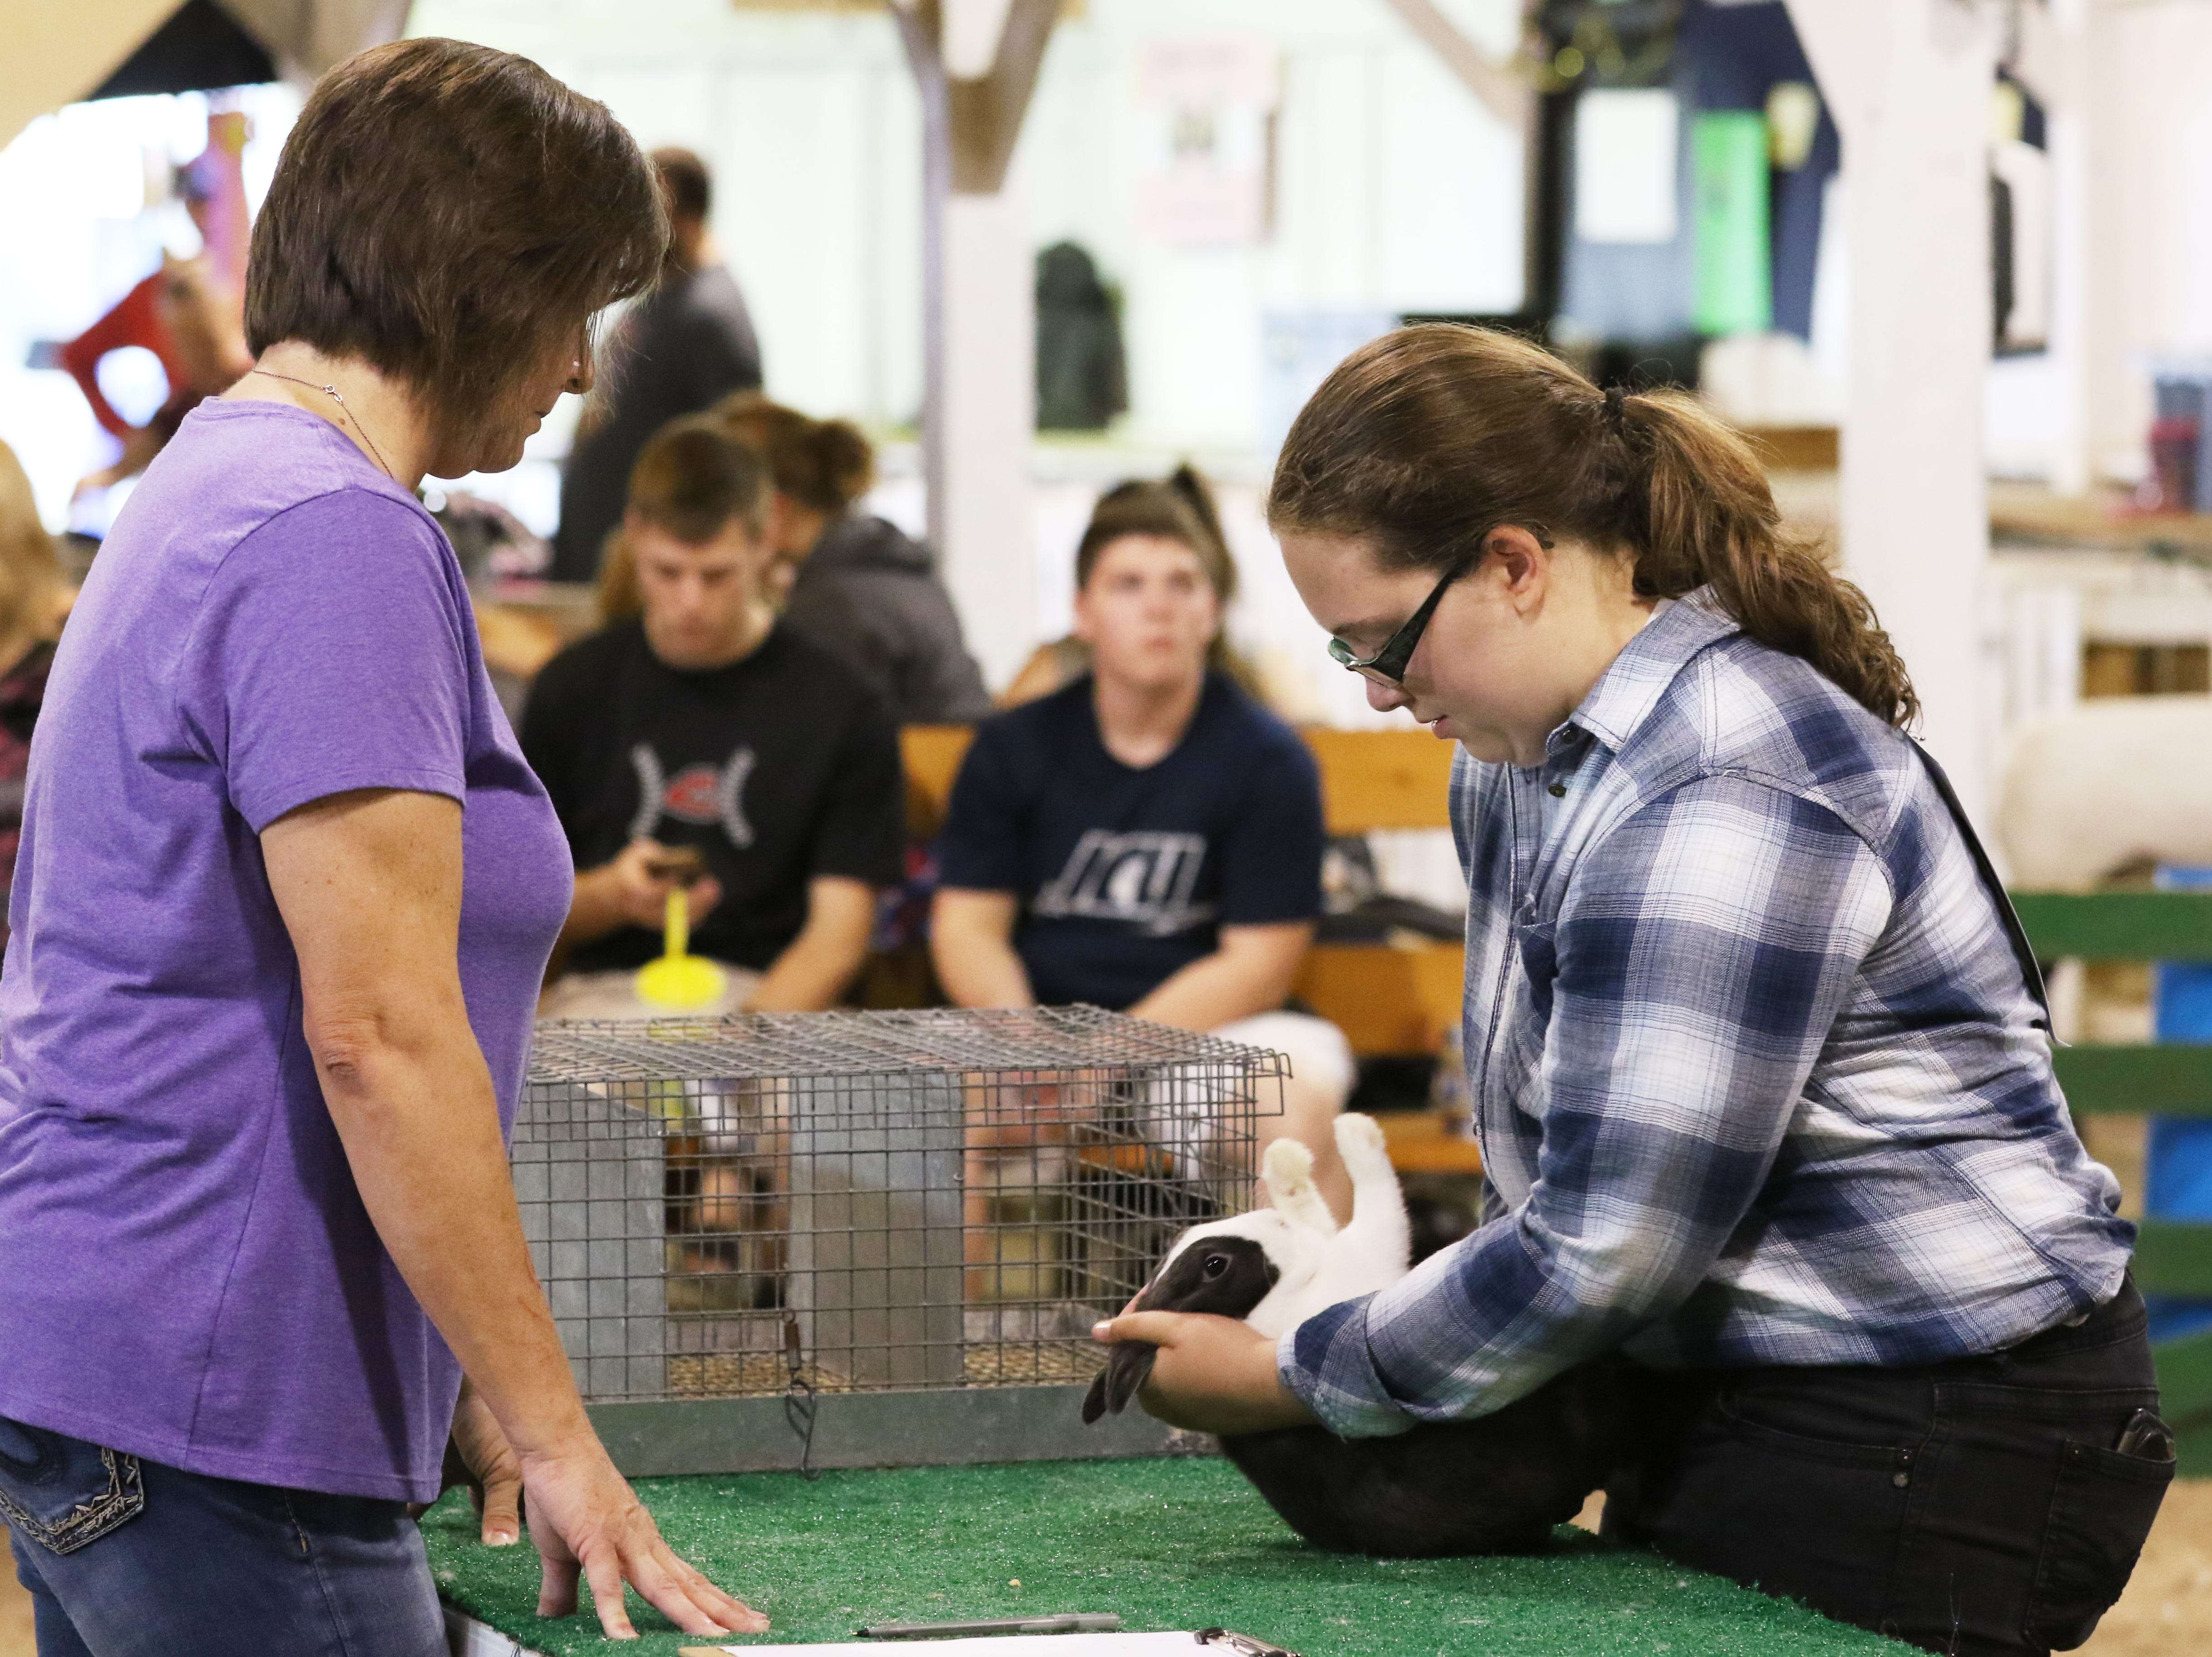 Emily Burrier shows a rabbit during the Showman of Showmen at the Coshocton County Fair on Wednesday.